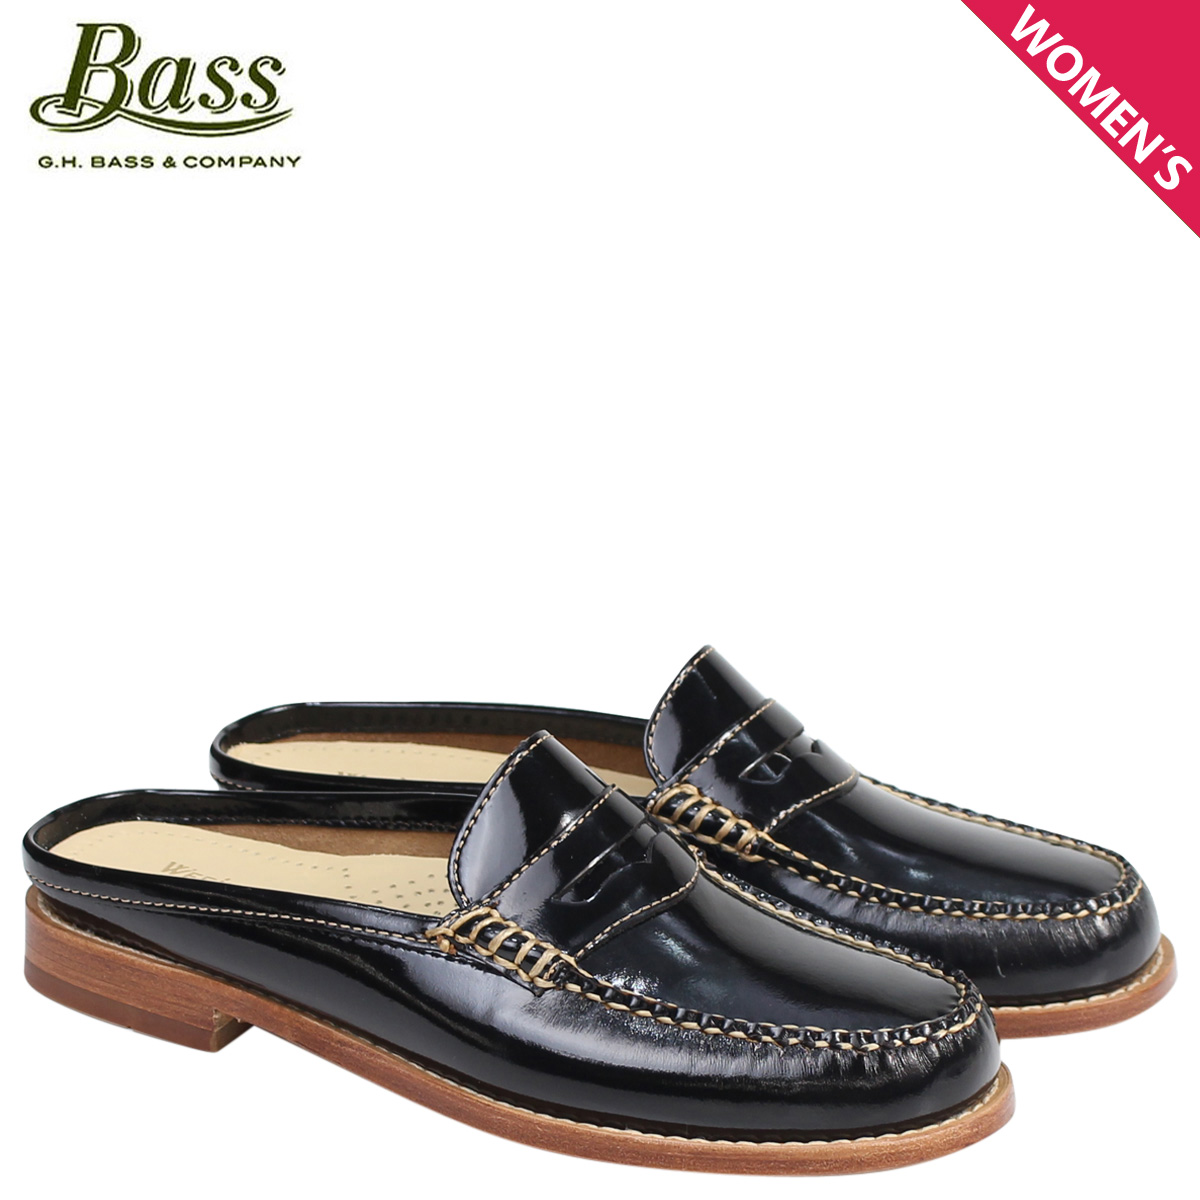 b92b990a479 G H bus loafer G.H. BASS レディースサンダルスリッパバブーシュ WYNN PATENT LEATHER MULE  WEEJUNS 71-22